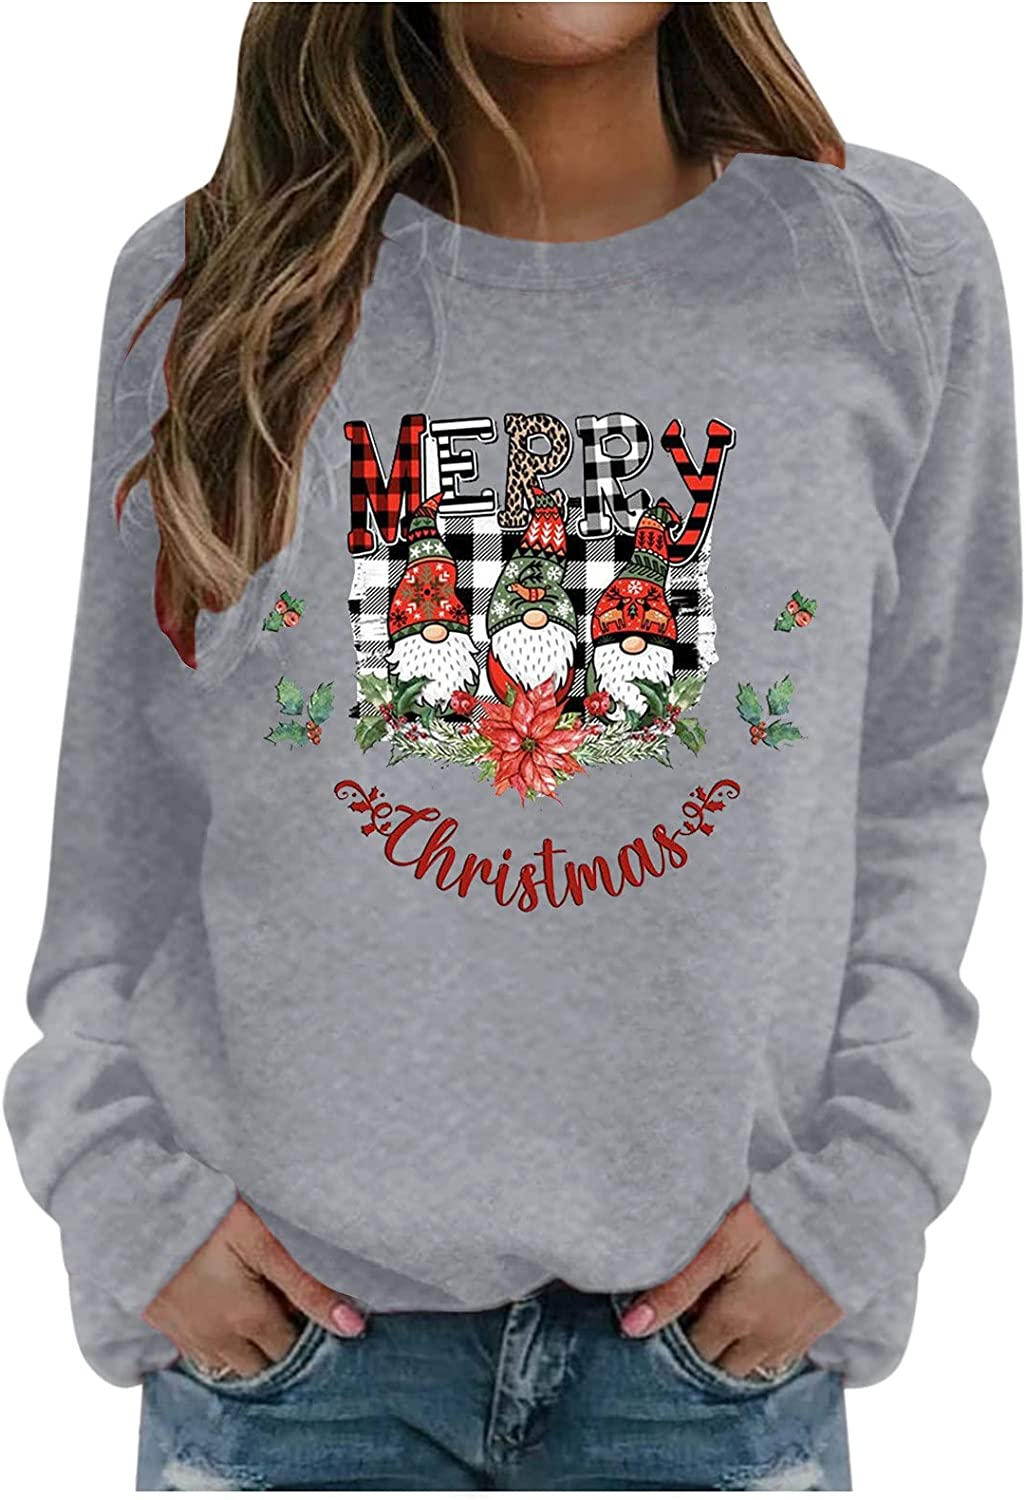 Christmas Gnome Shirts for Women Plus Size Crewneck Pullover Graphic Tshirt Loose Casual Holiday Fall Tops Sweatshirts